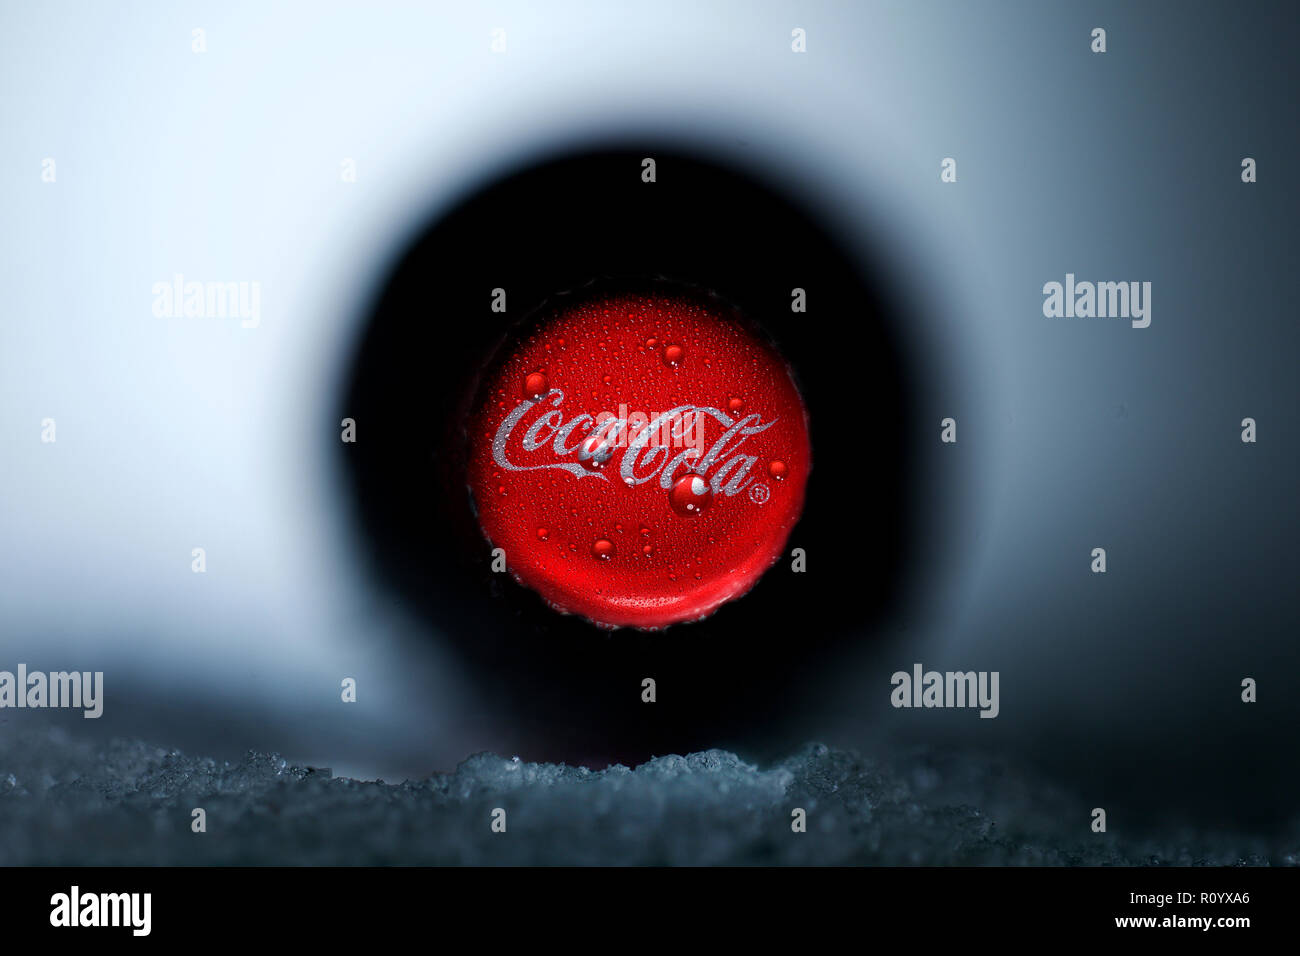 Coca-cola bottle in freezer compartment, shallow focus close up on red bottle top - Stock Image